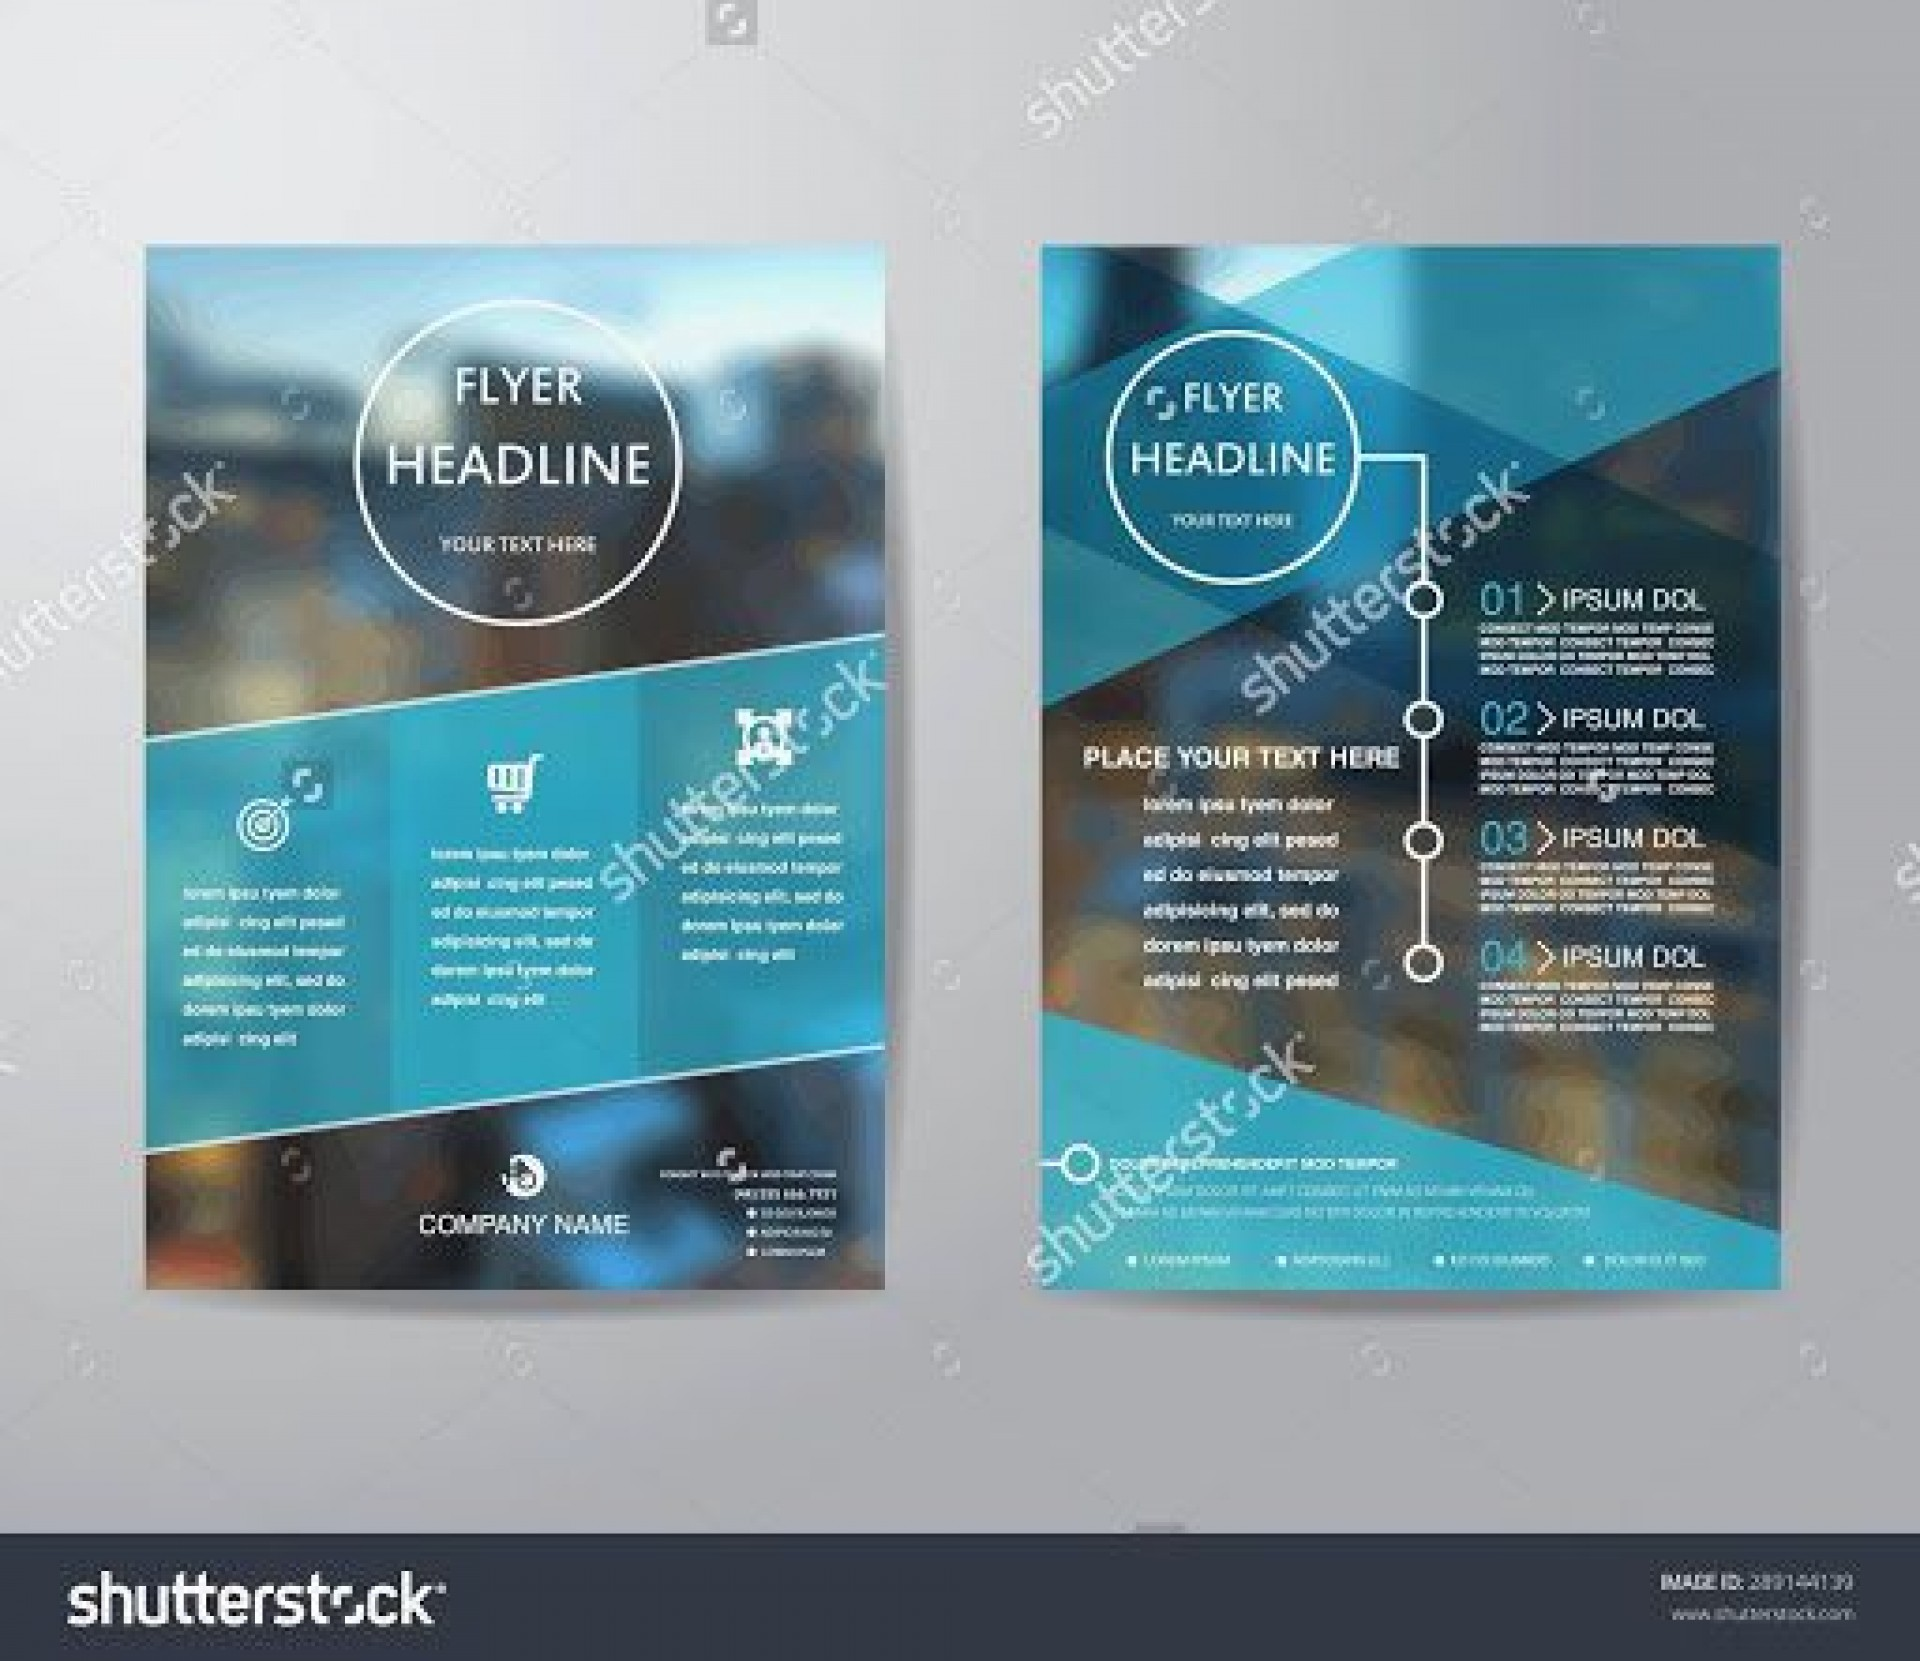 009 Exceptional Free Online Brochure Template For Word Idea  Microsoft1920